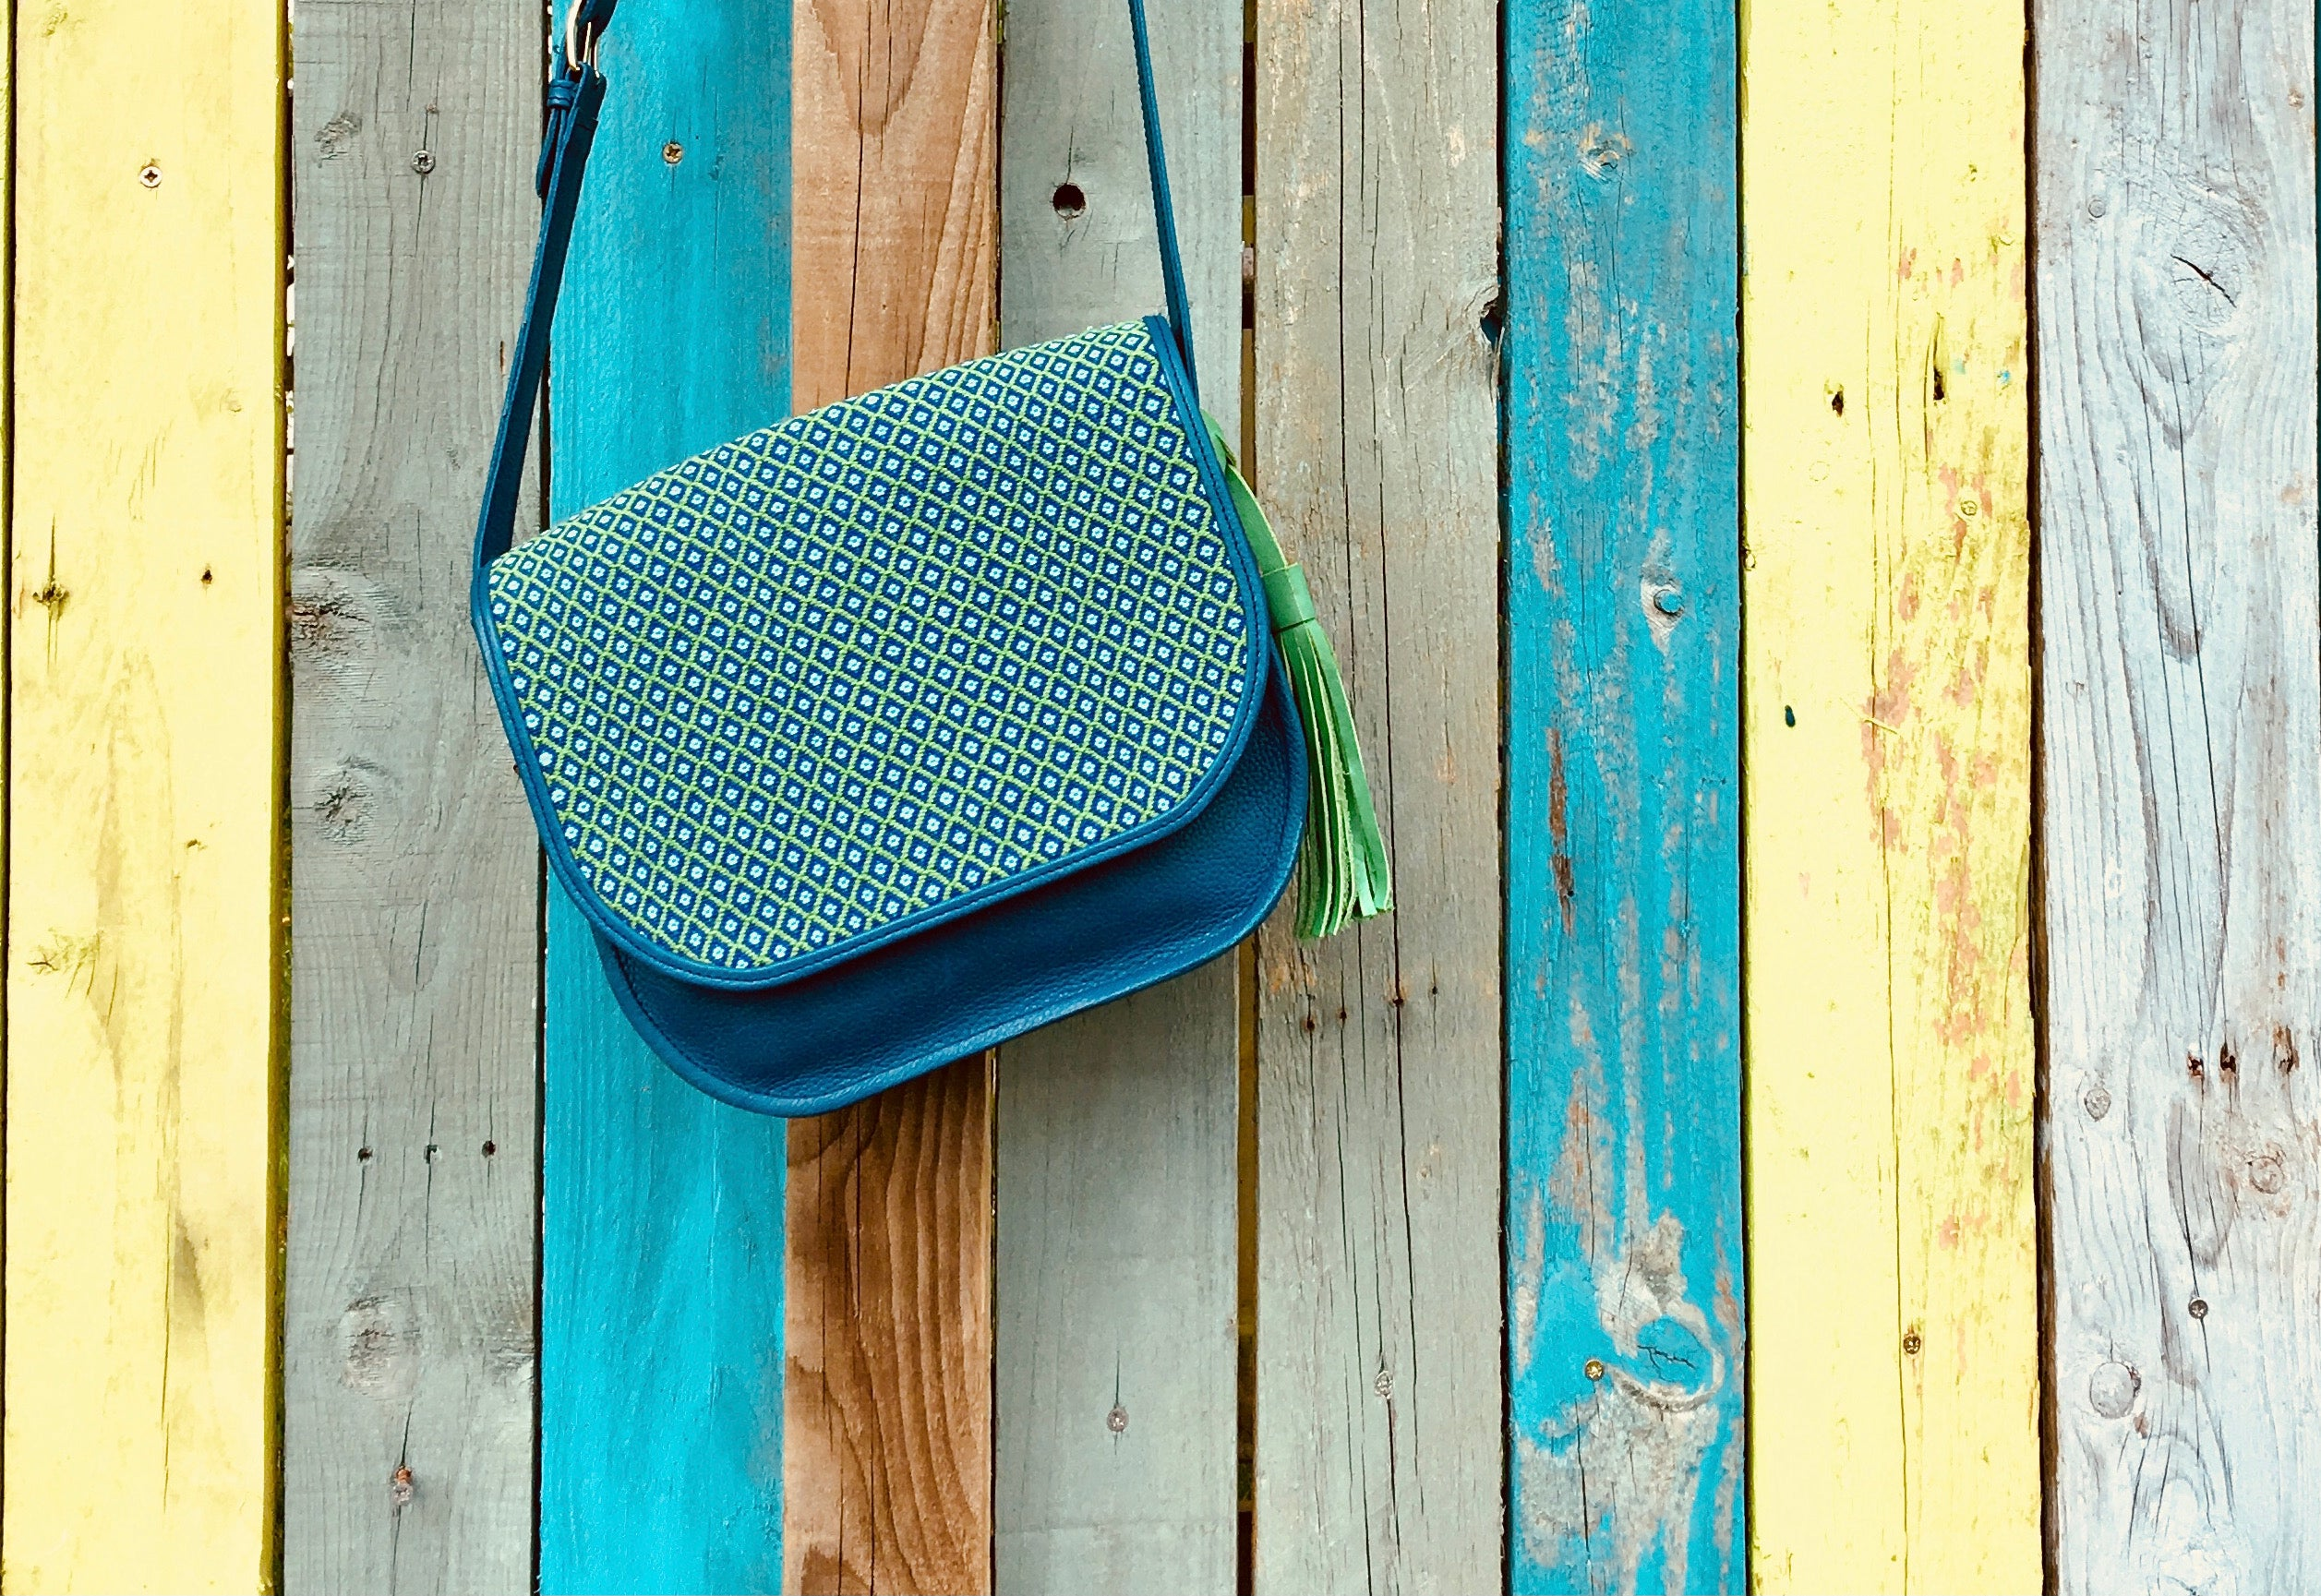 Blue embroidered leather bag hanging by strap from colourful fence